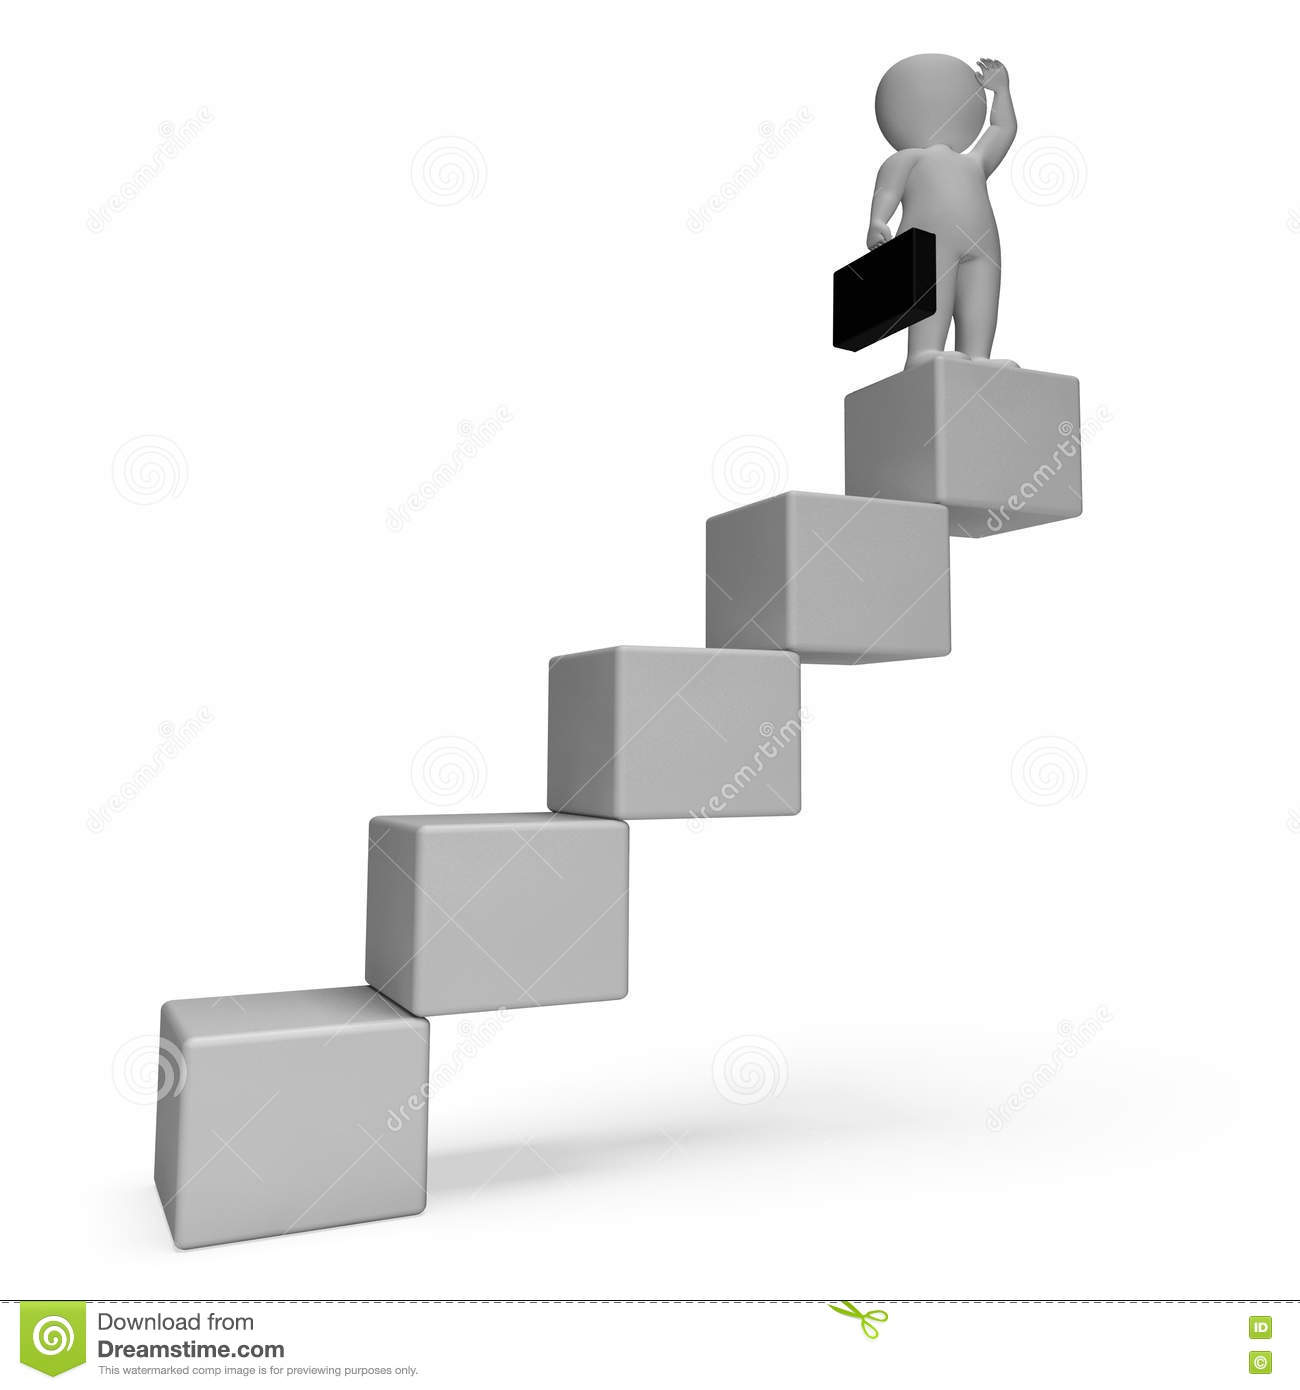 stairs character indicates business person and achieve d stairs character indicates business person and achieve 3d rendering